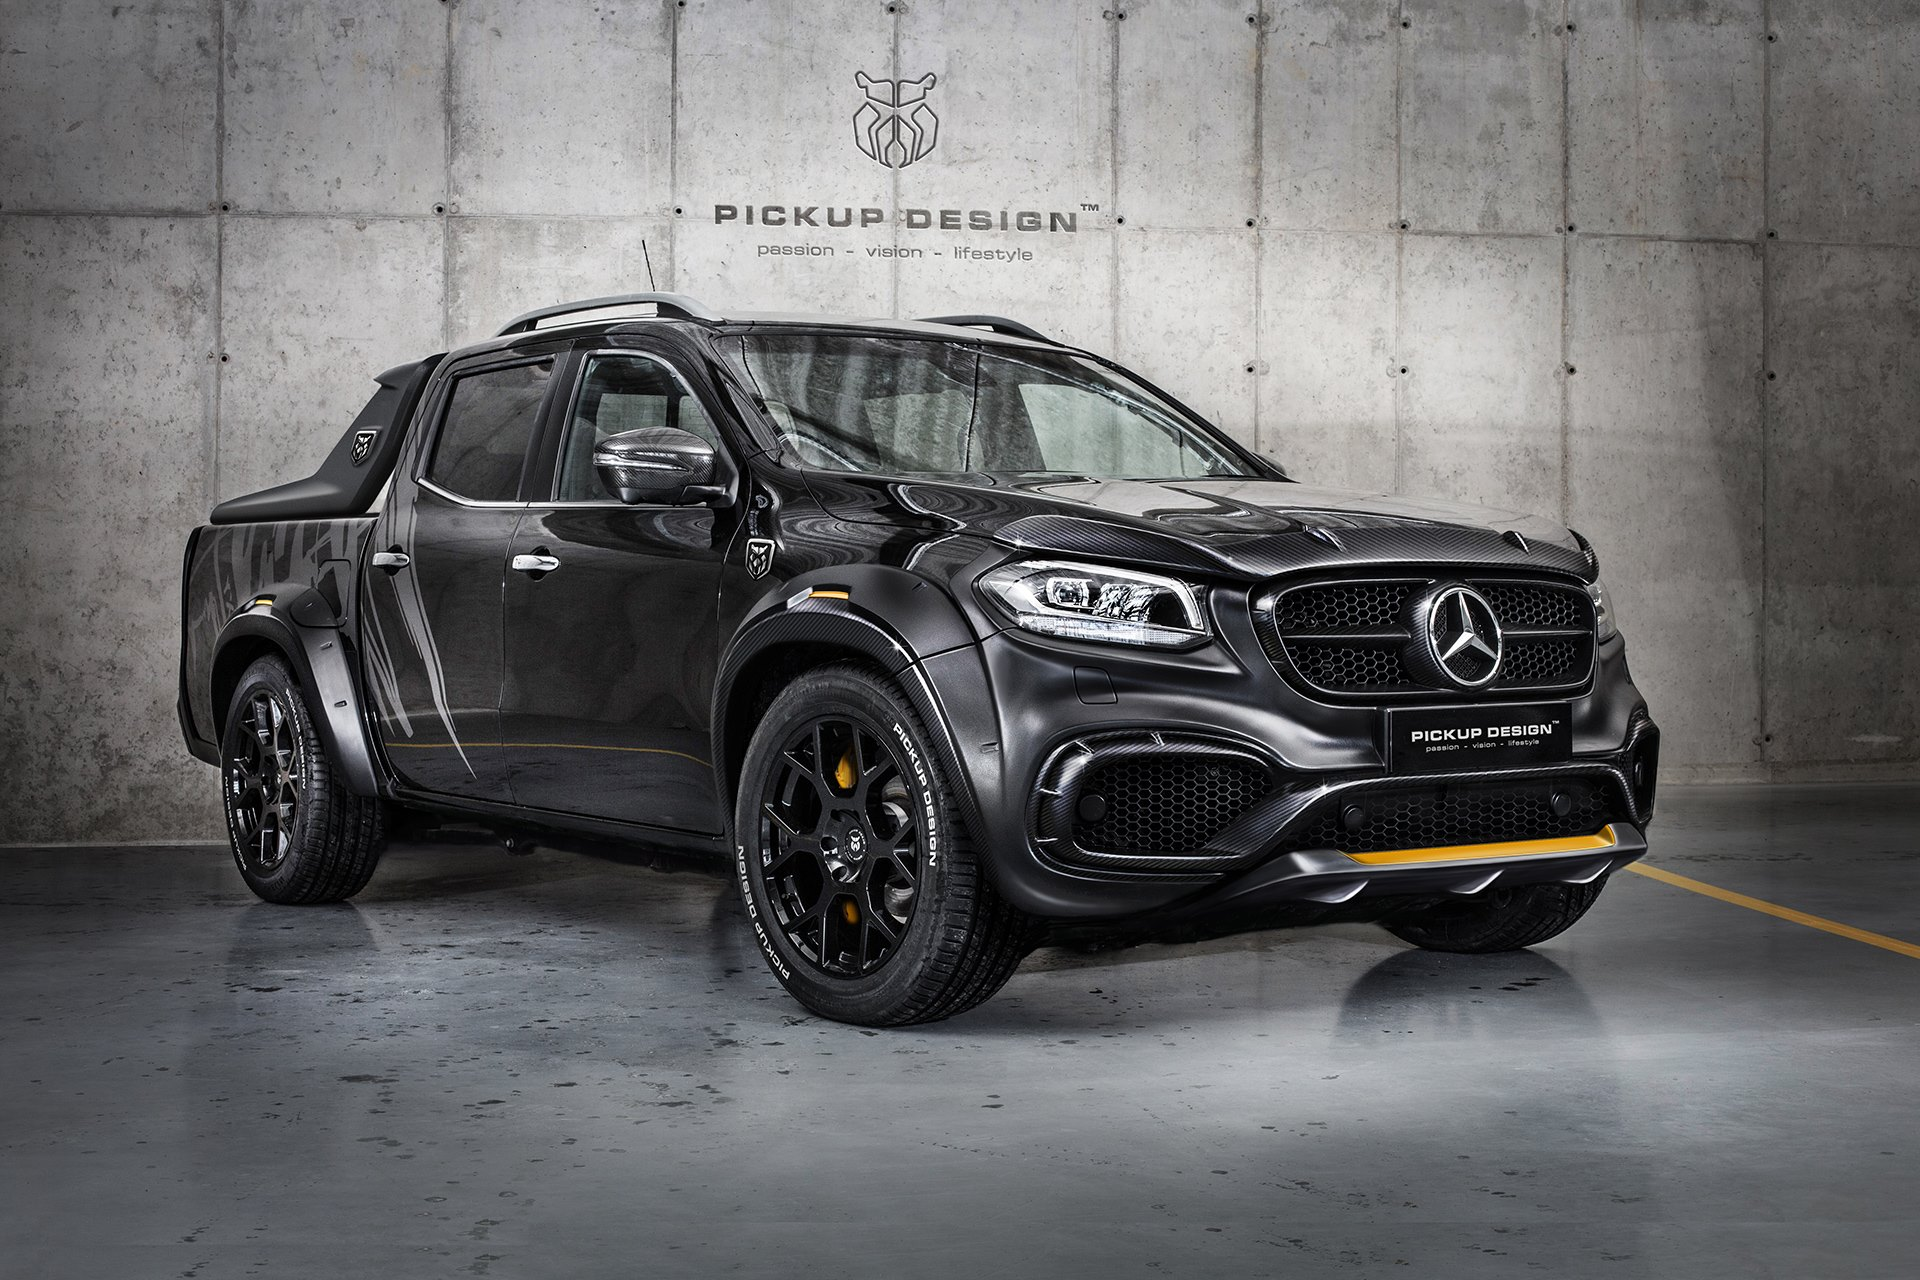 tuner builds wild mercedes benz x class pickup truck. Black Bedroom Furniture Sets. Home Design Ideas